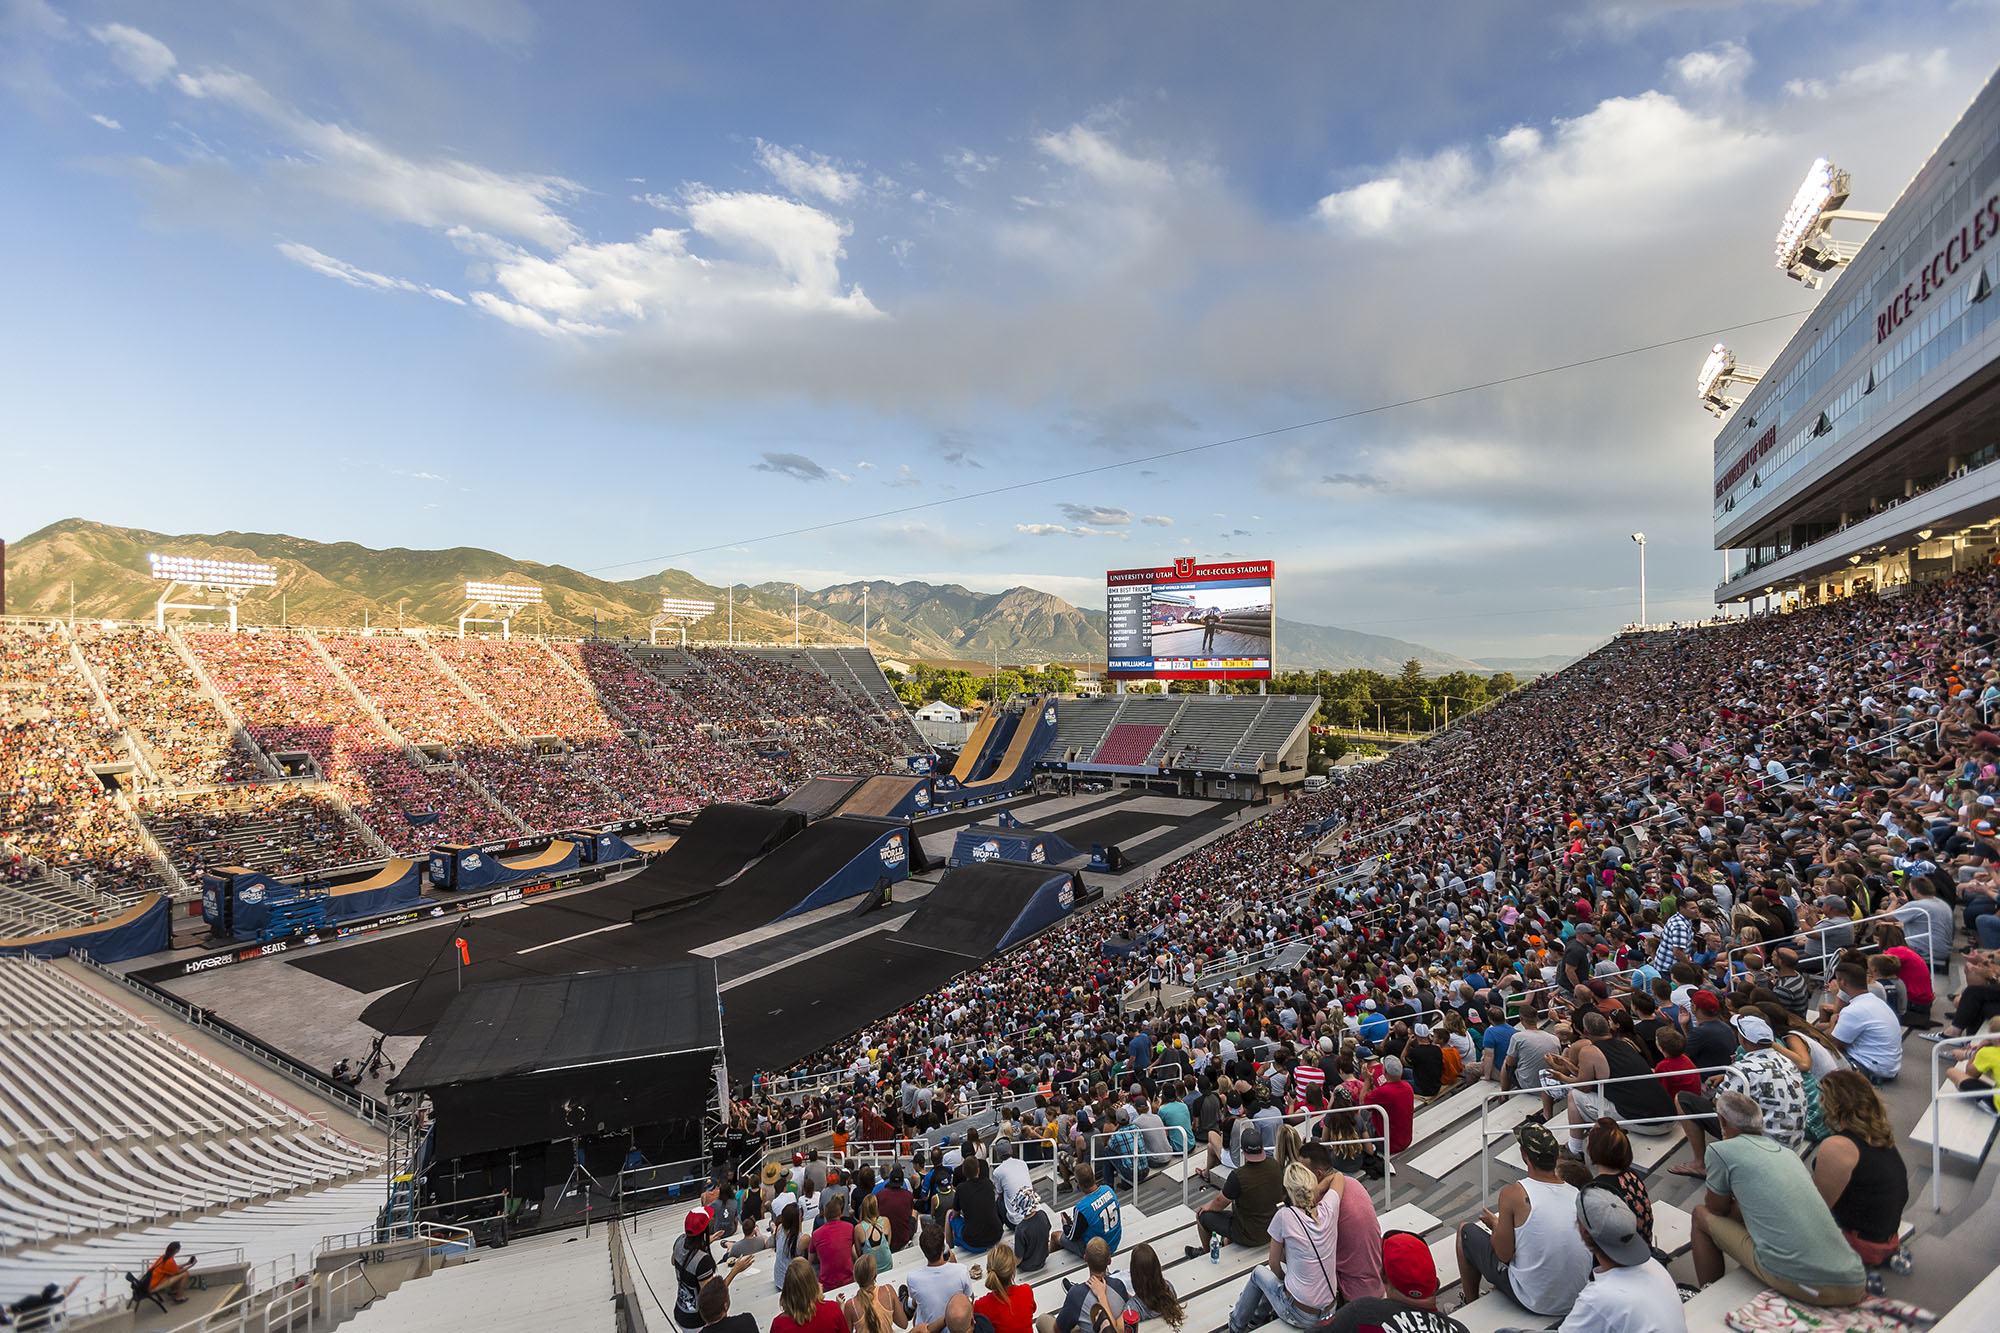 The first Nitro World Games at Rice-Eccles Stadium was pretty well attended for a first time event.